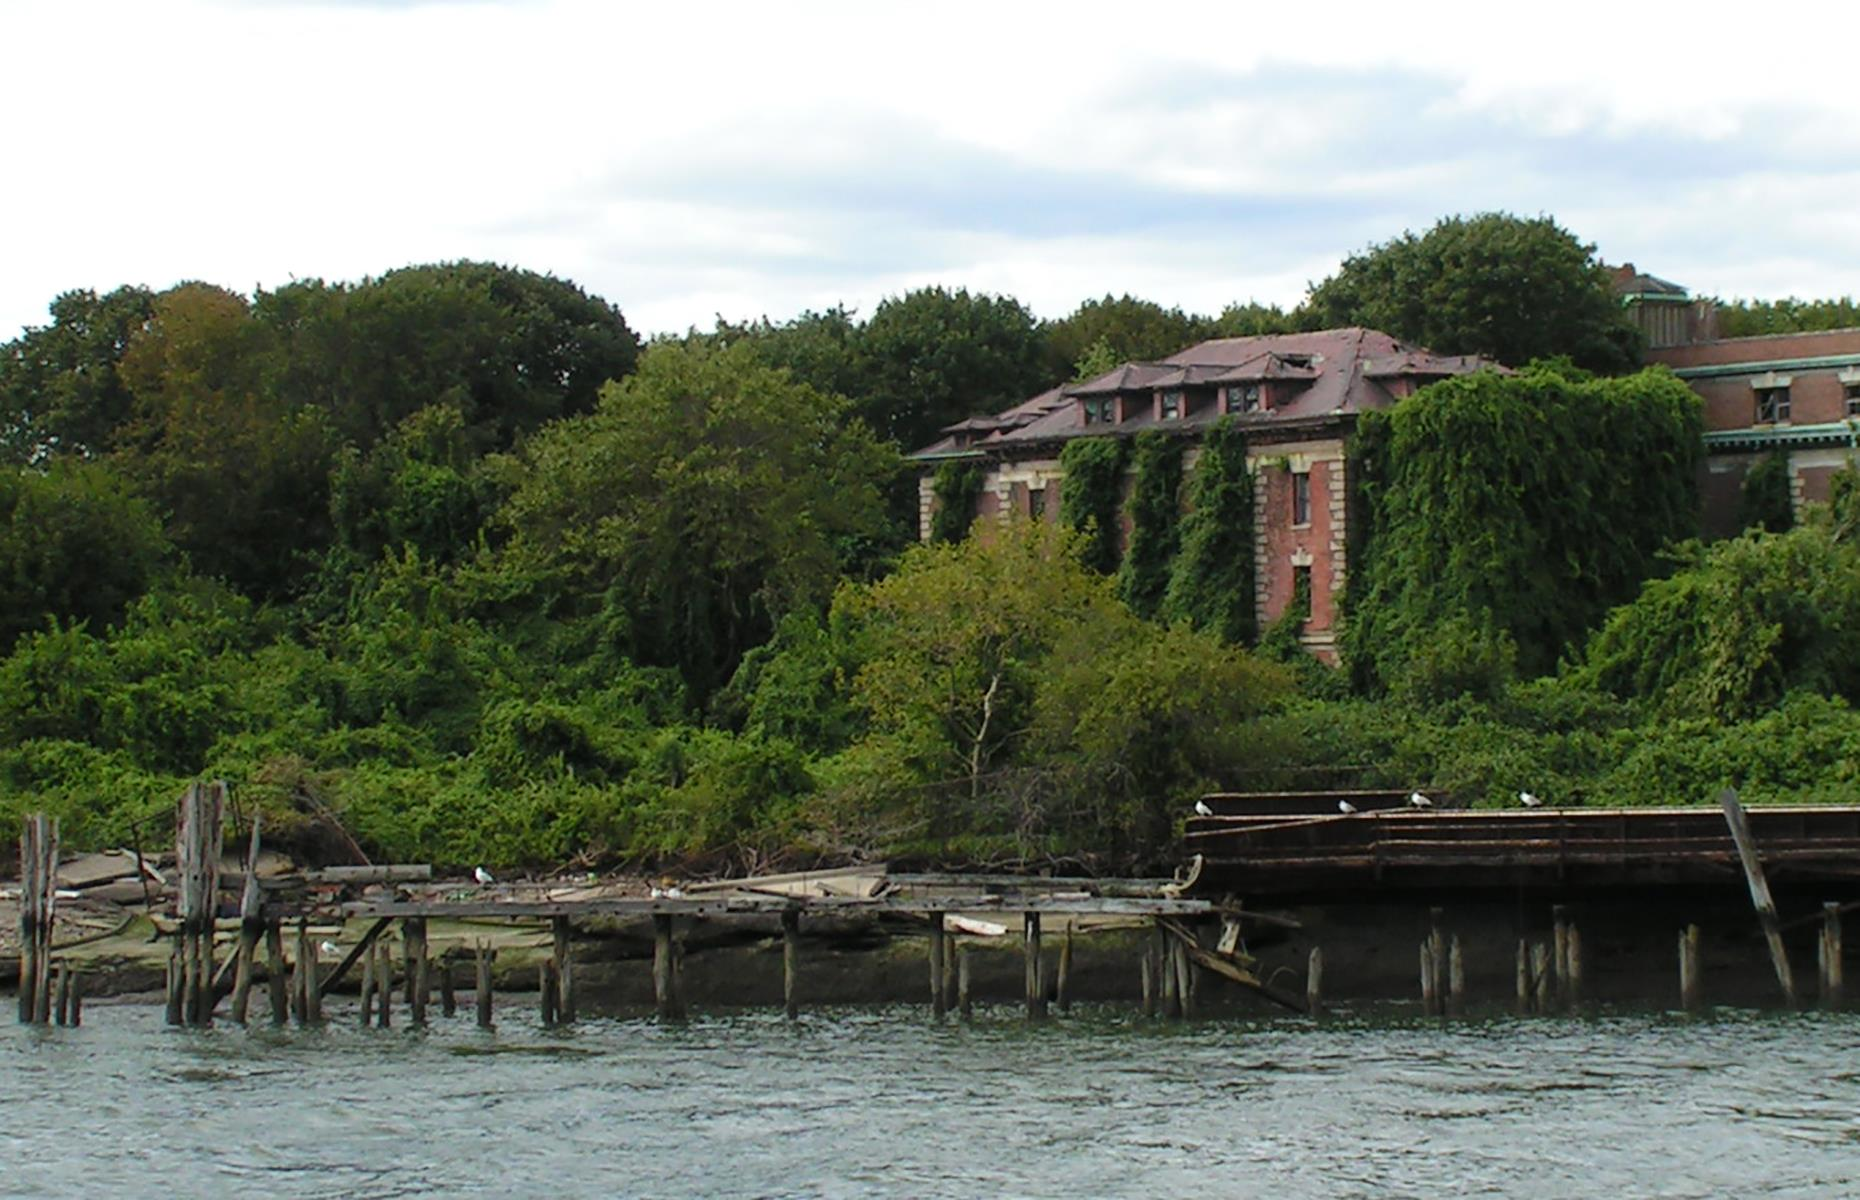 "Slide 28 of 64: North Brother Island, an eerie plot in New York City's East River, has a macabre past. It was ravaged by a fire in 1905, leading to the loss of hundreds of lives, but it's most well-known as the place where so-called ""Typhoid Mary"" was held. Mary Mallon, an immigrant cook living in the city in the early 1900s, was the first presumed carrier of bacteria linked to typhoid, after several of her co-workers contracted the disease."